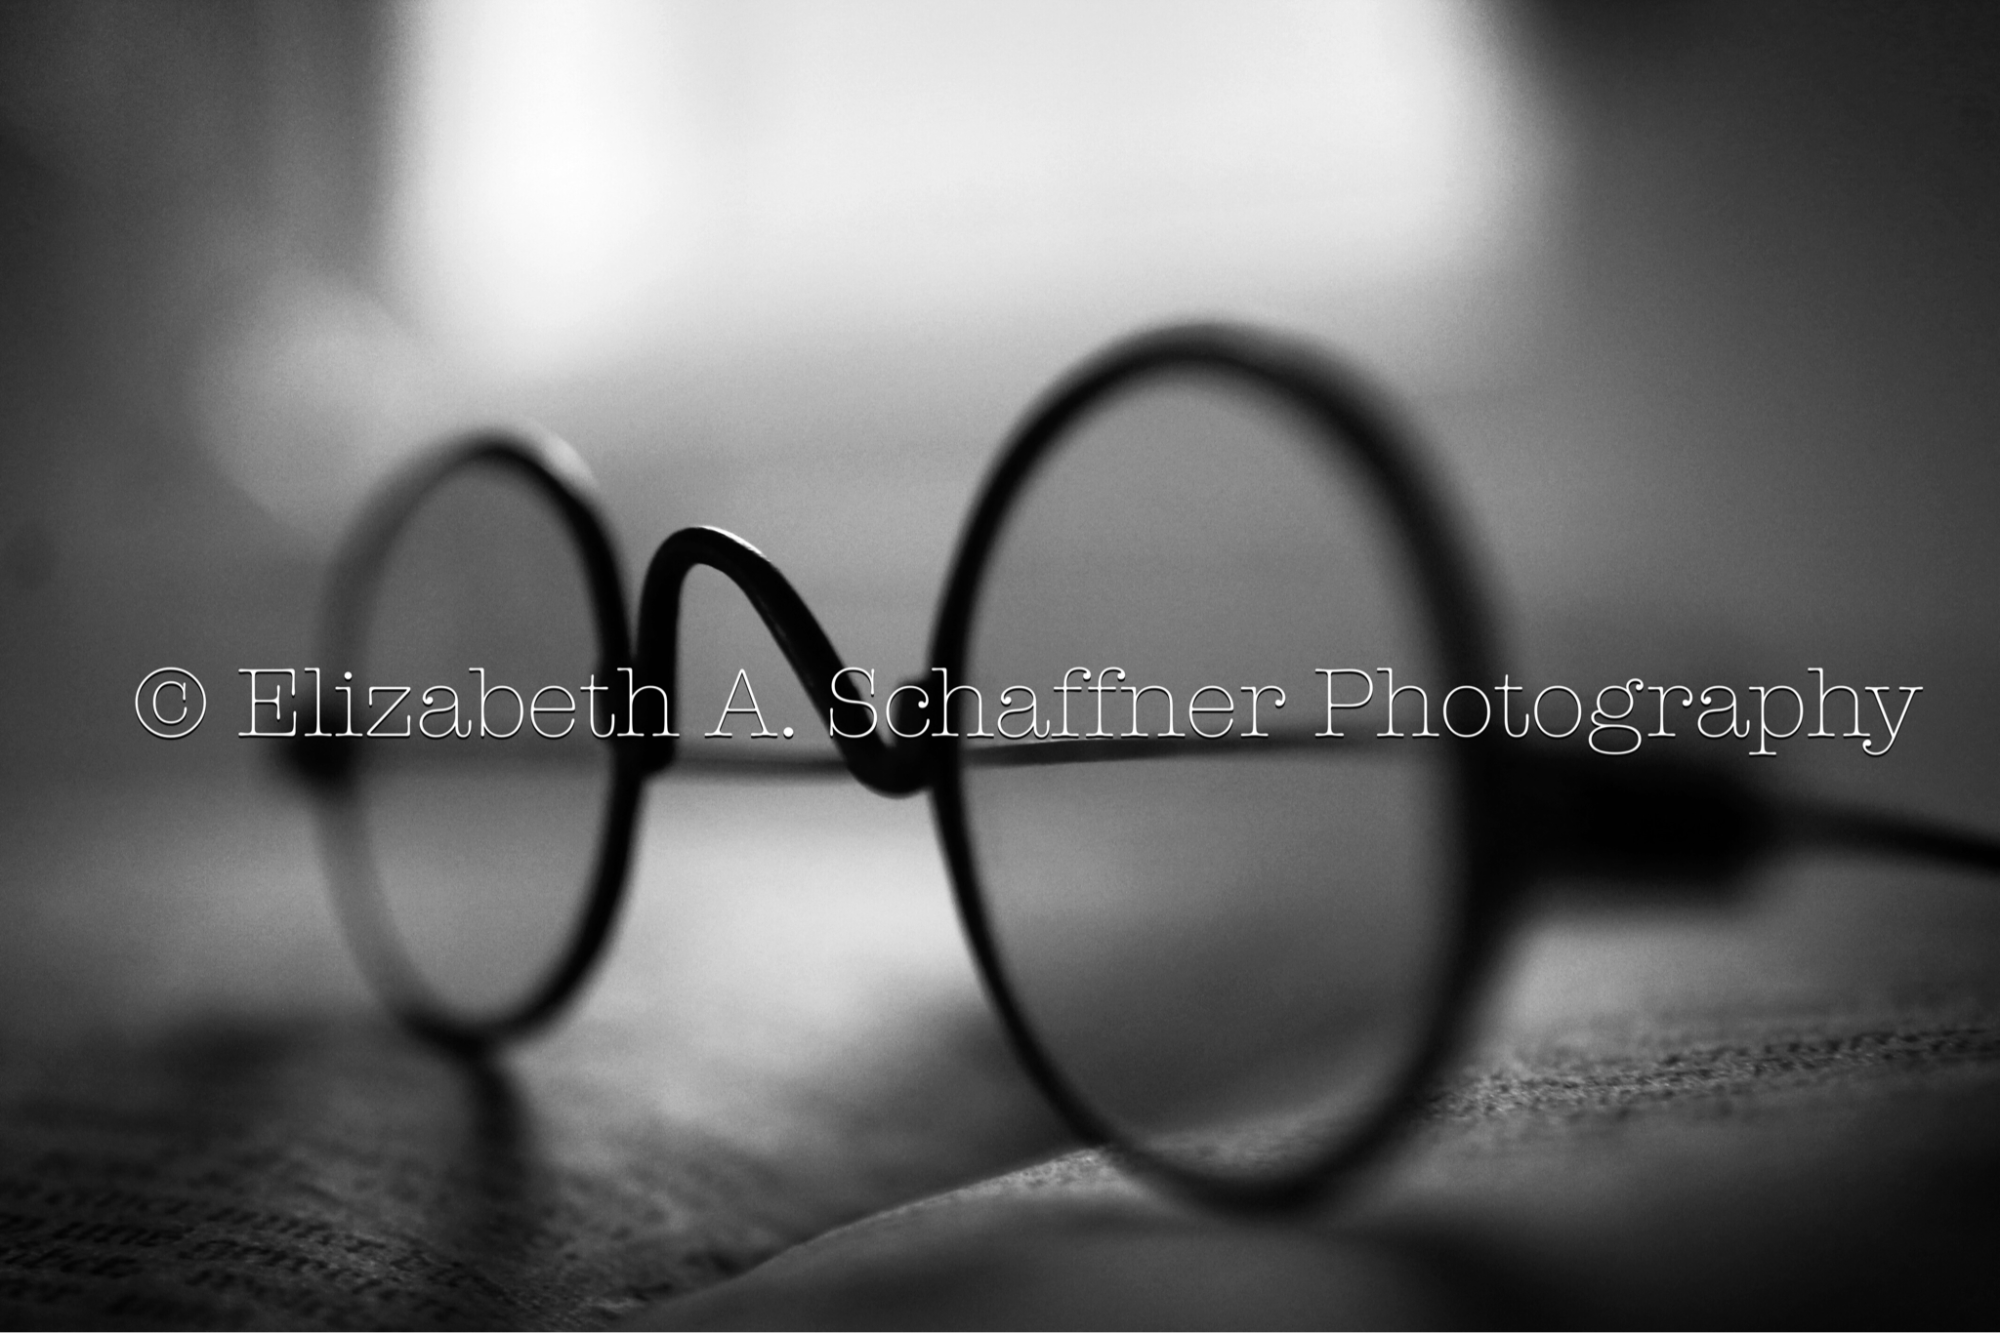 Elizabeth A. Schaffner Photography #Still #Life #Photography #BlackandWhite #White #Black #Glasses #Antiques